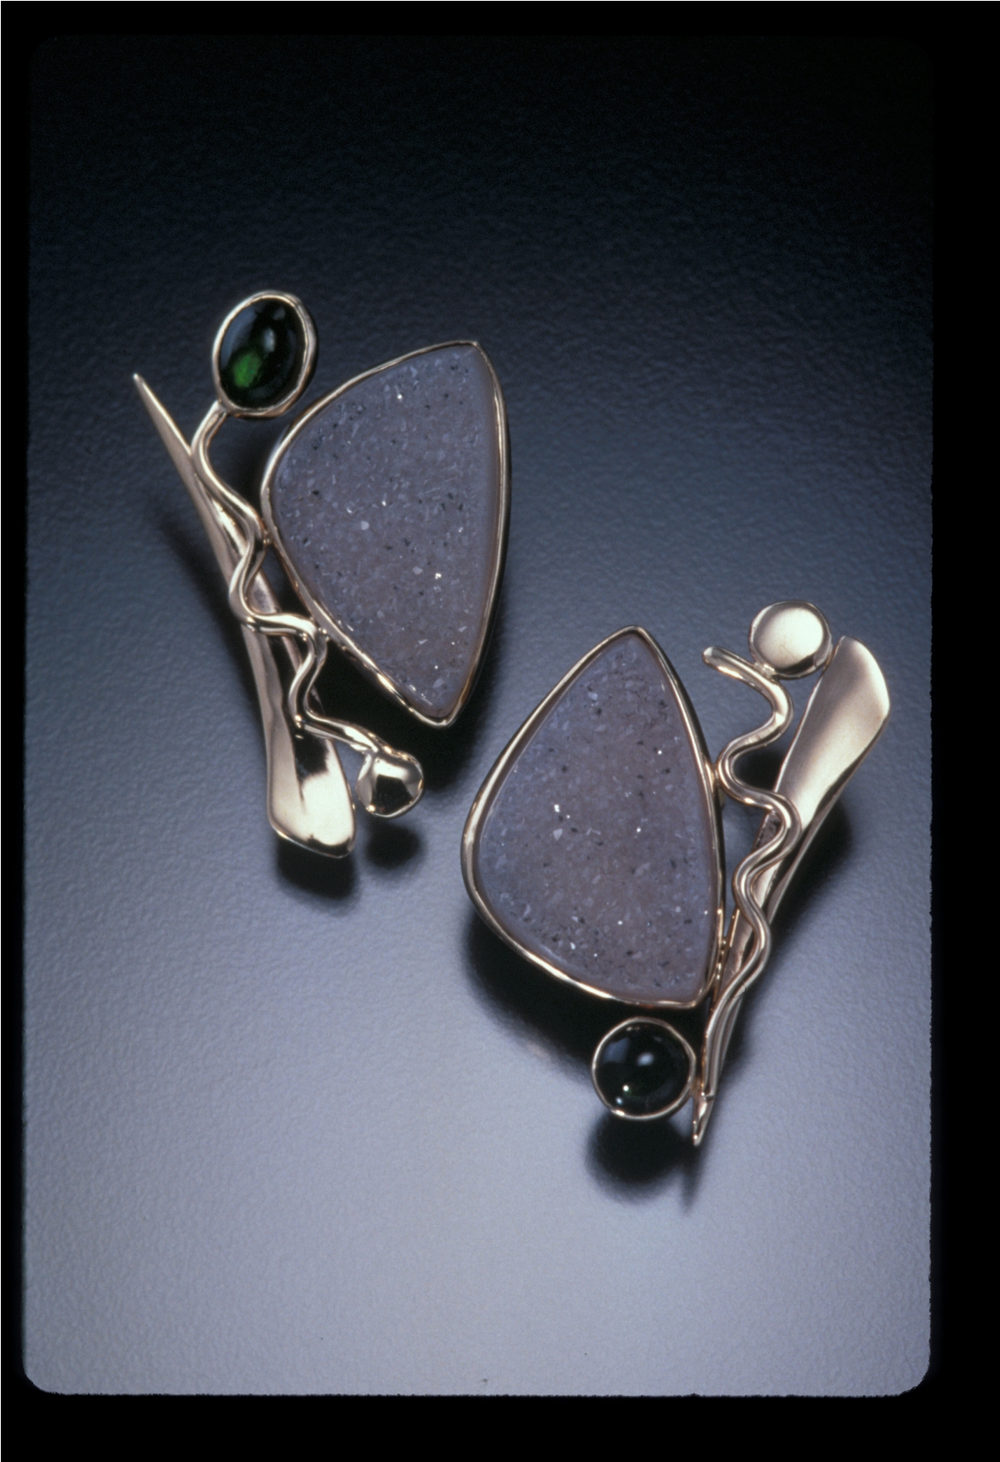 Greg Sandage Sandage Jewelry Designs Sugarloaf Craft Festivals